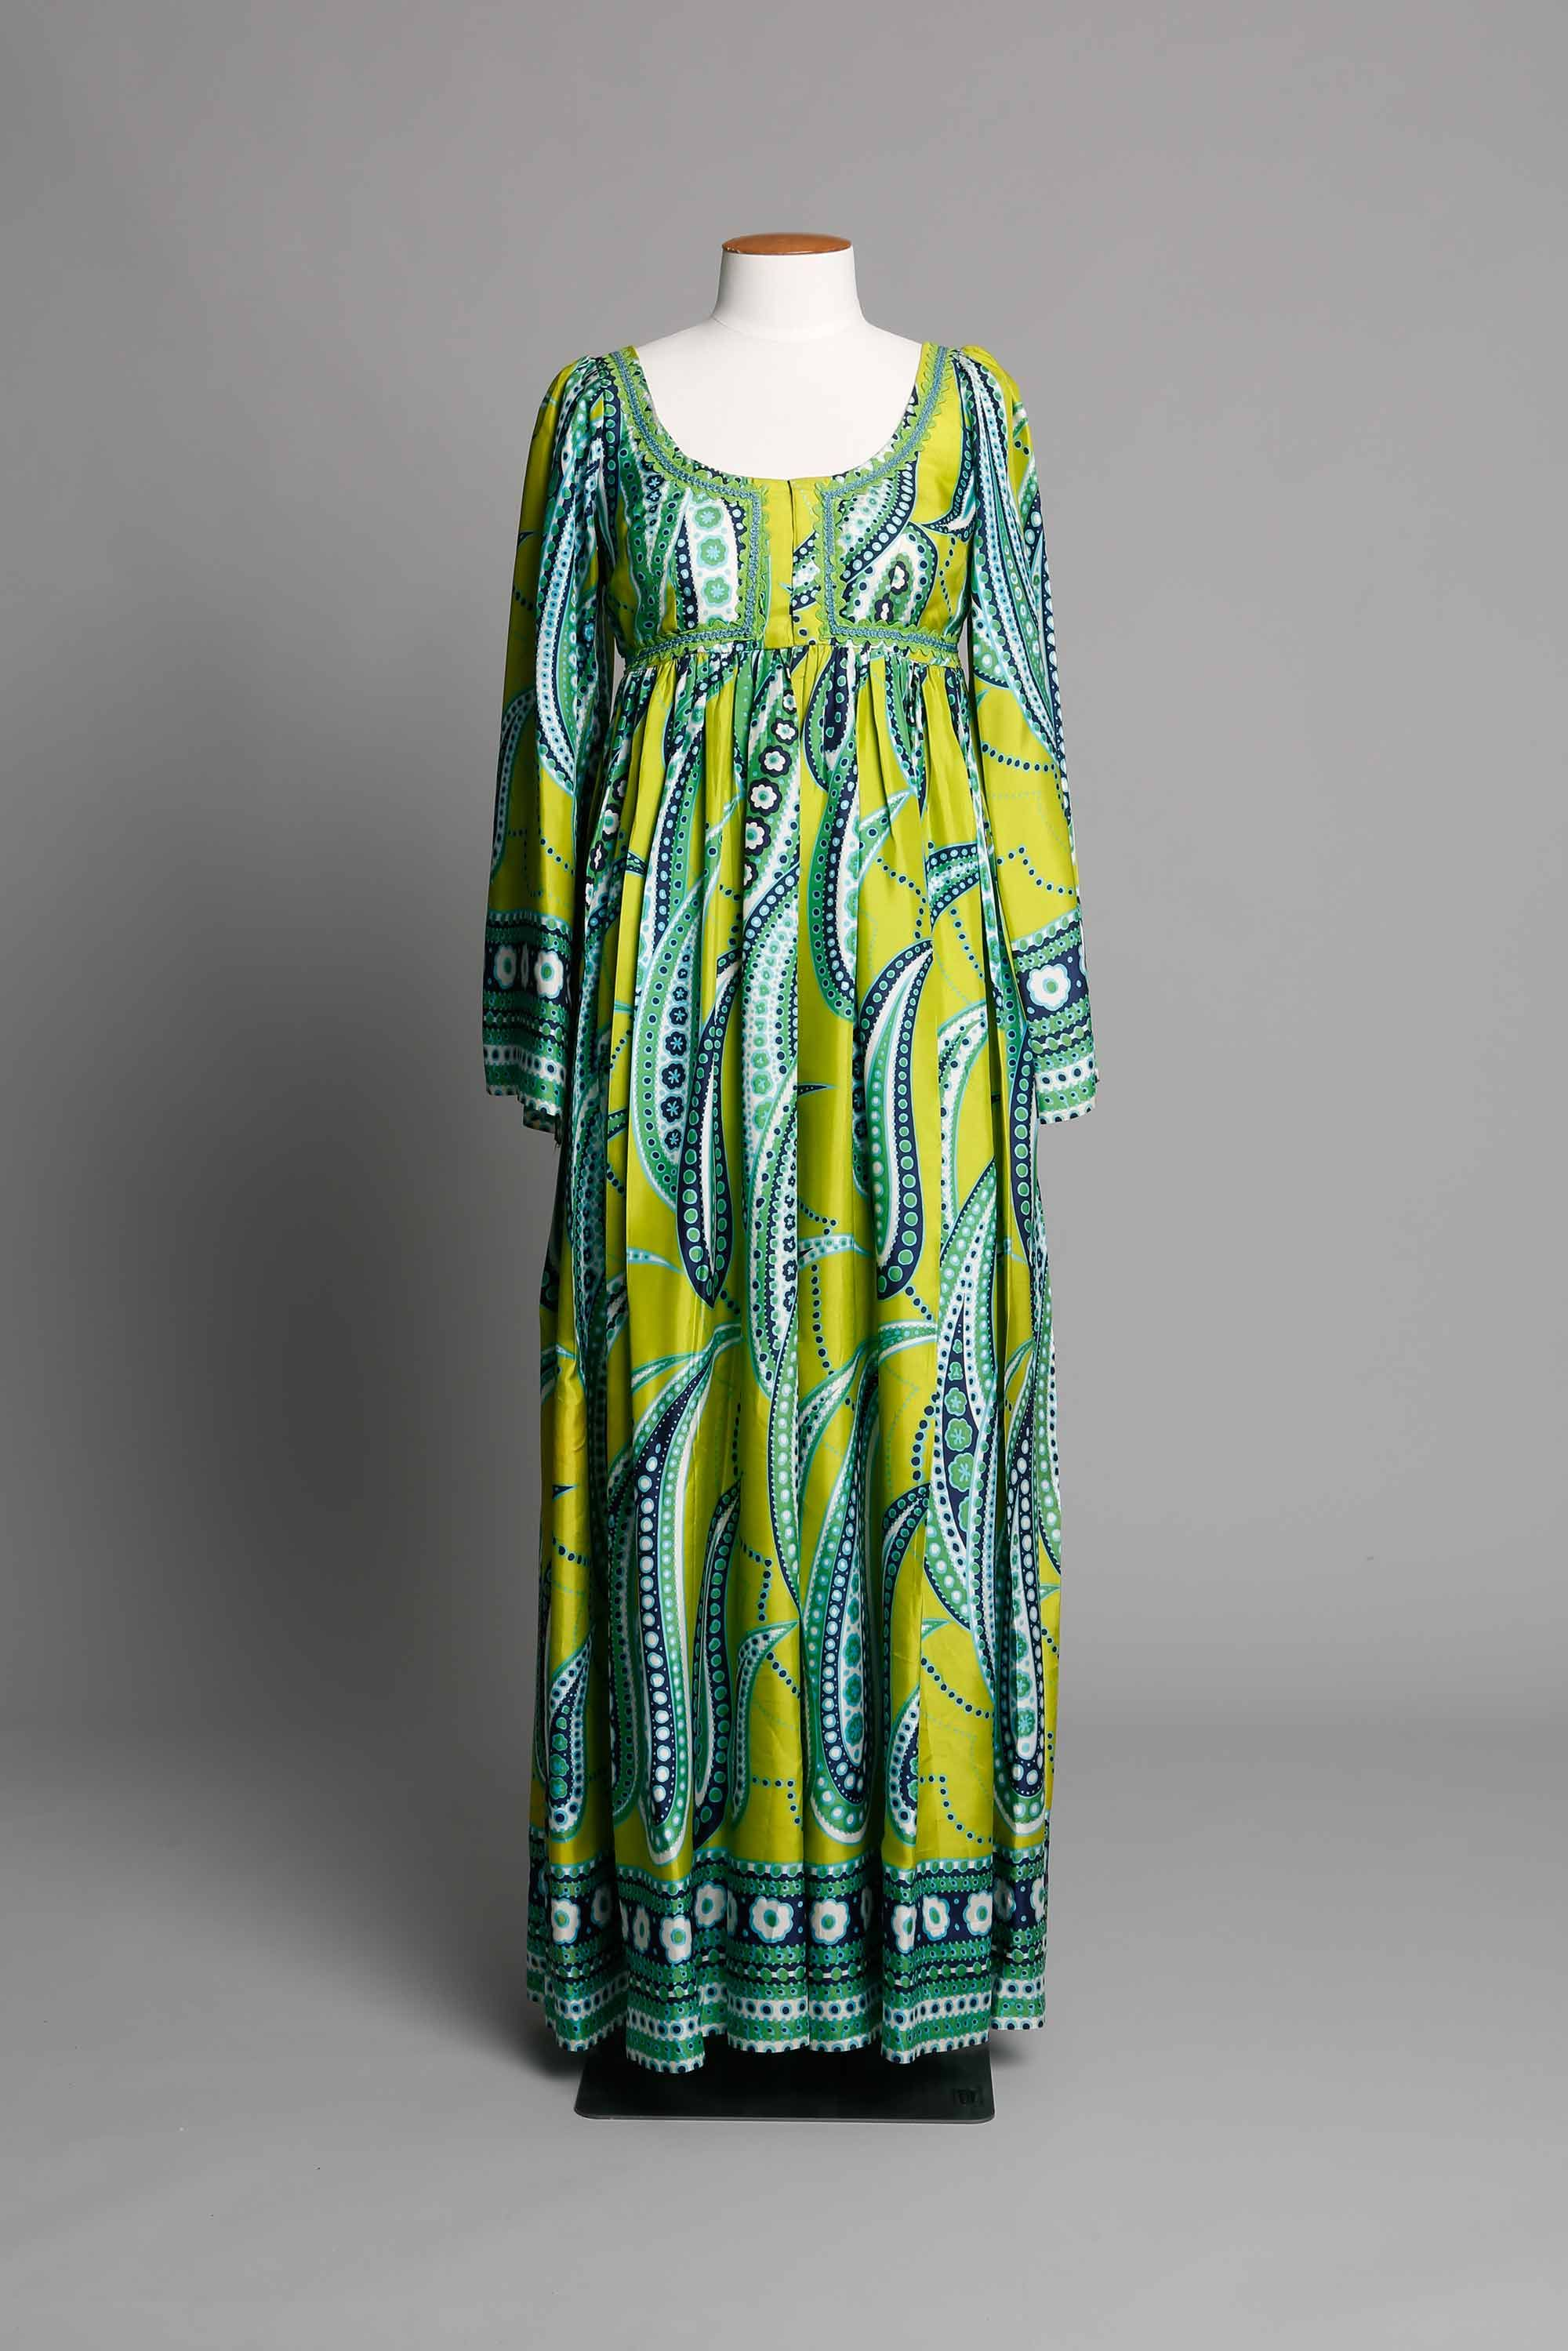 Empire line dress in paisley print DATE 1970 LABEL